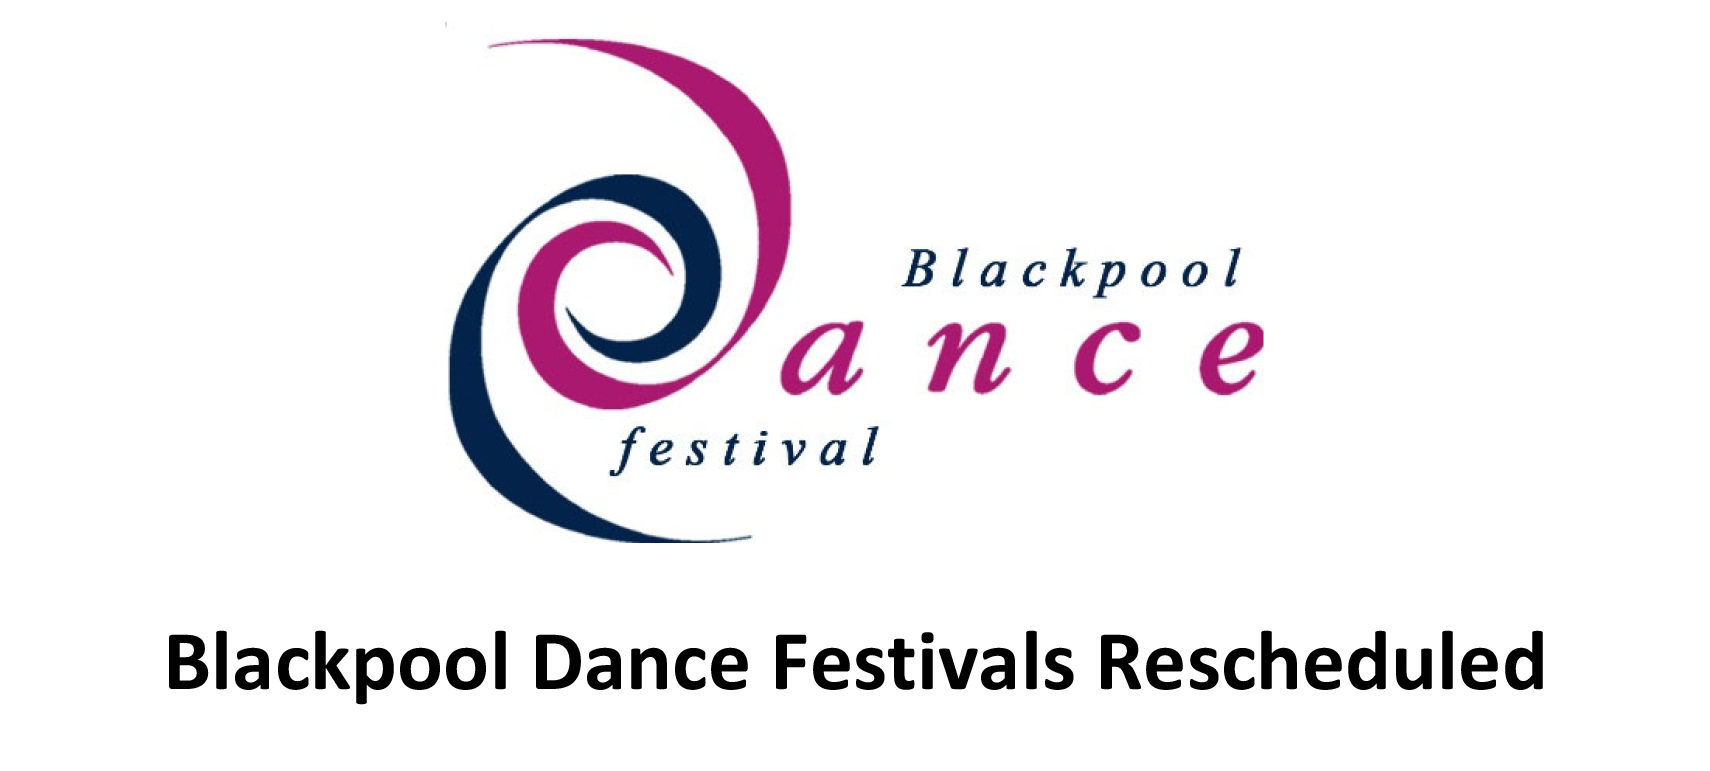 Blackpool Dance Festival 2020 Press Release